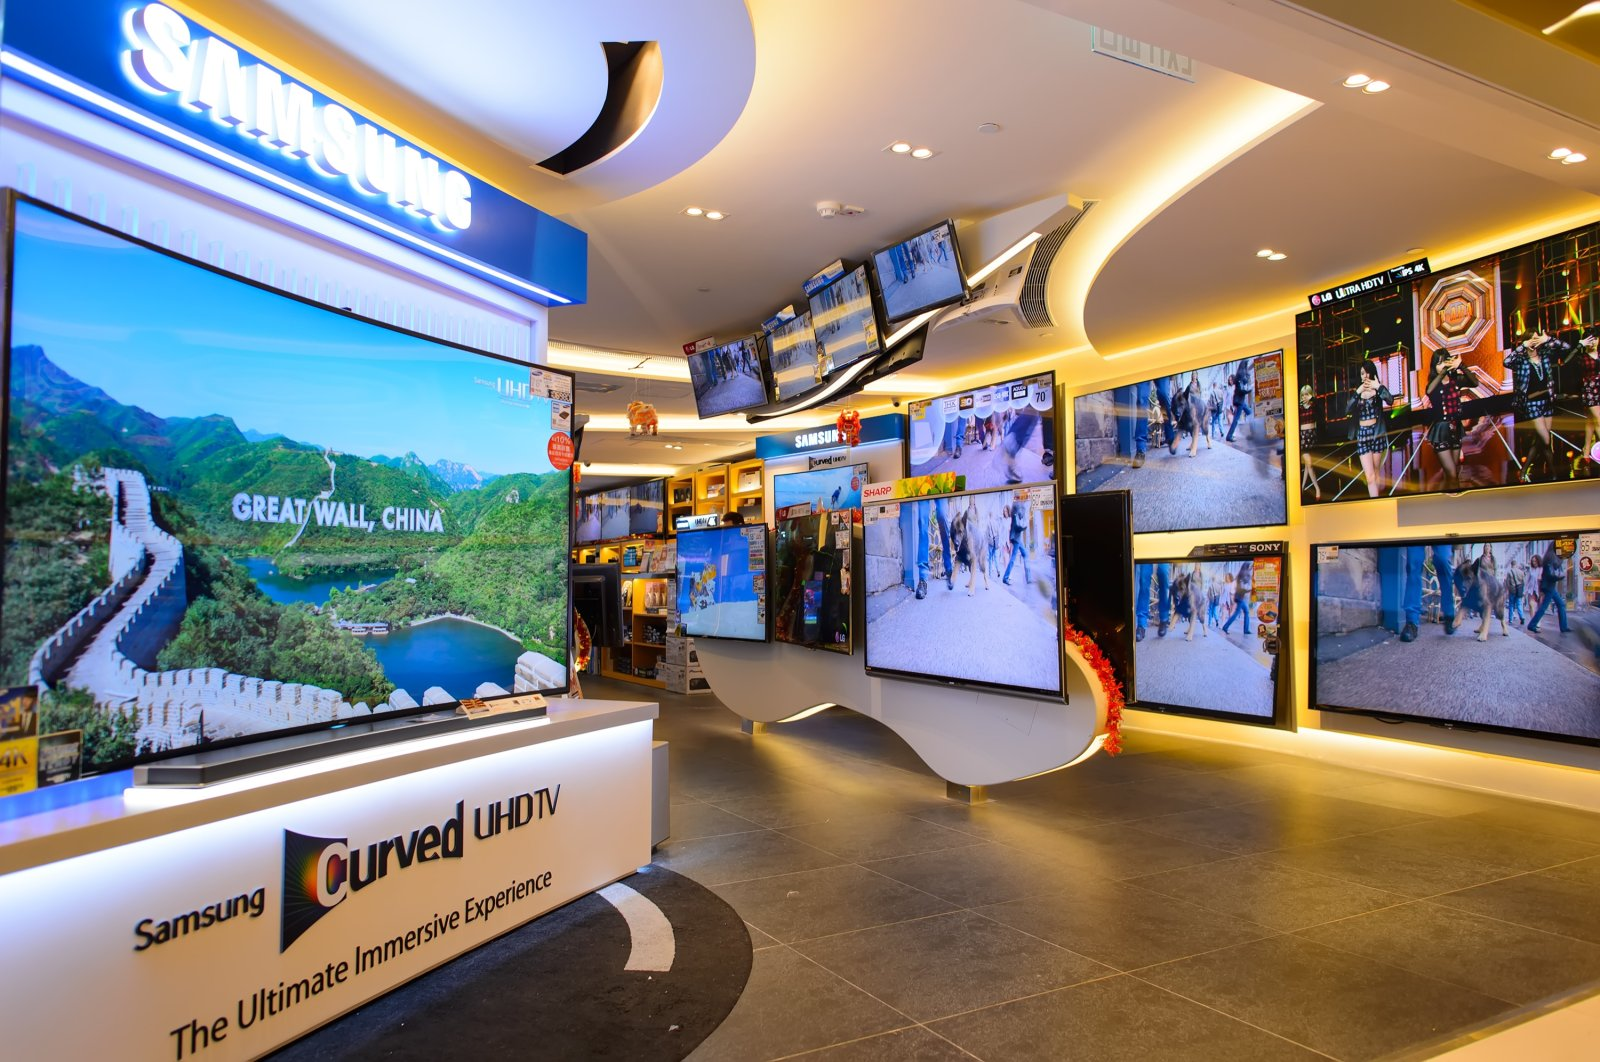 Daily shows and other footage are displayed on screens at a shopping center in Hong Kong, Feb. 4, 2015. (Shutterstock Photo)